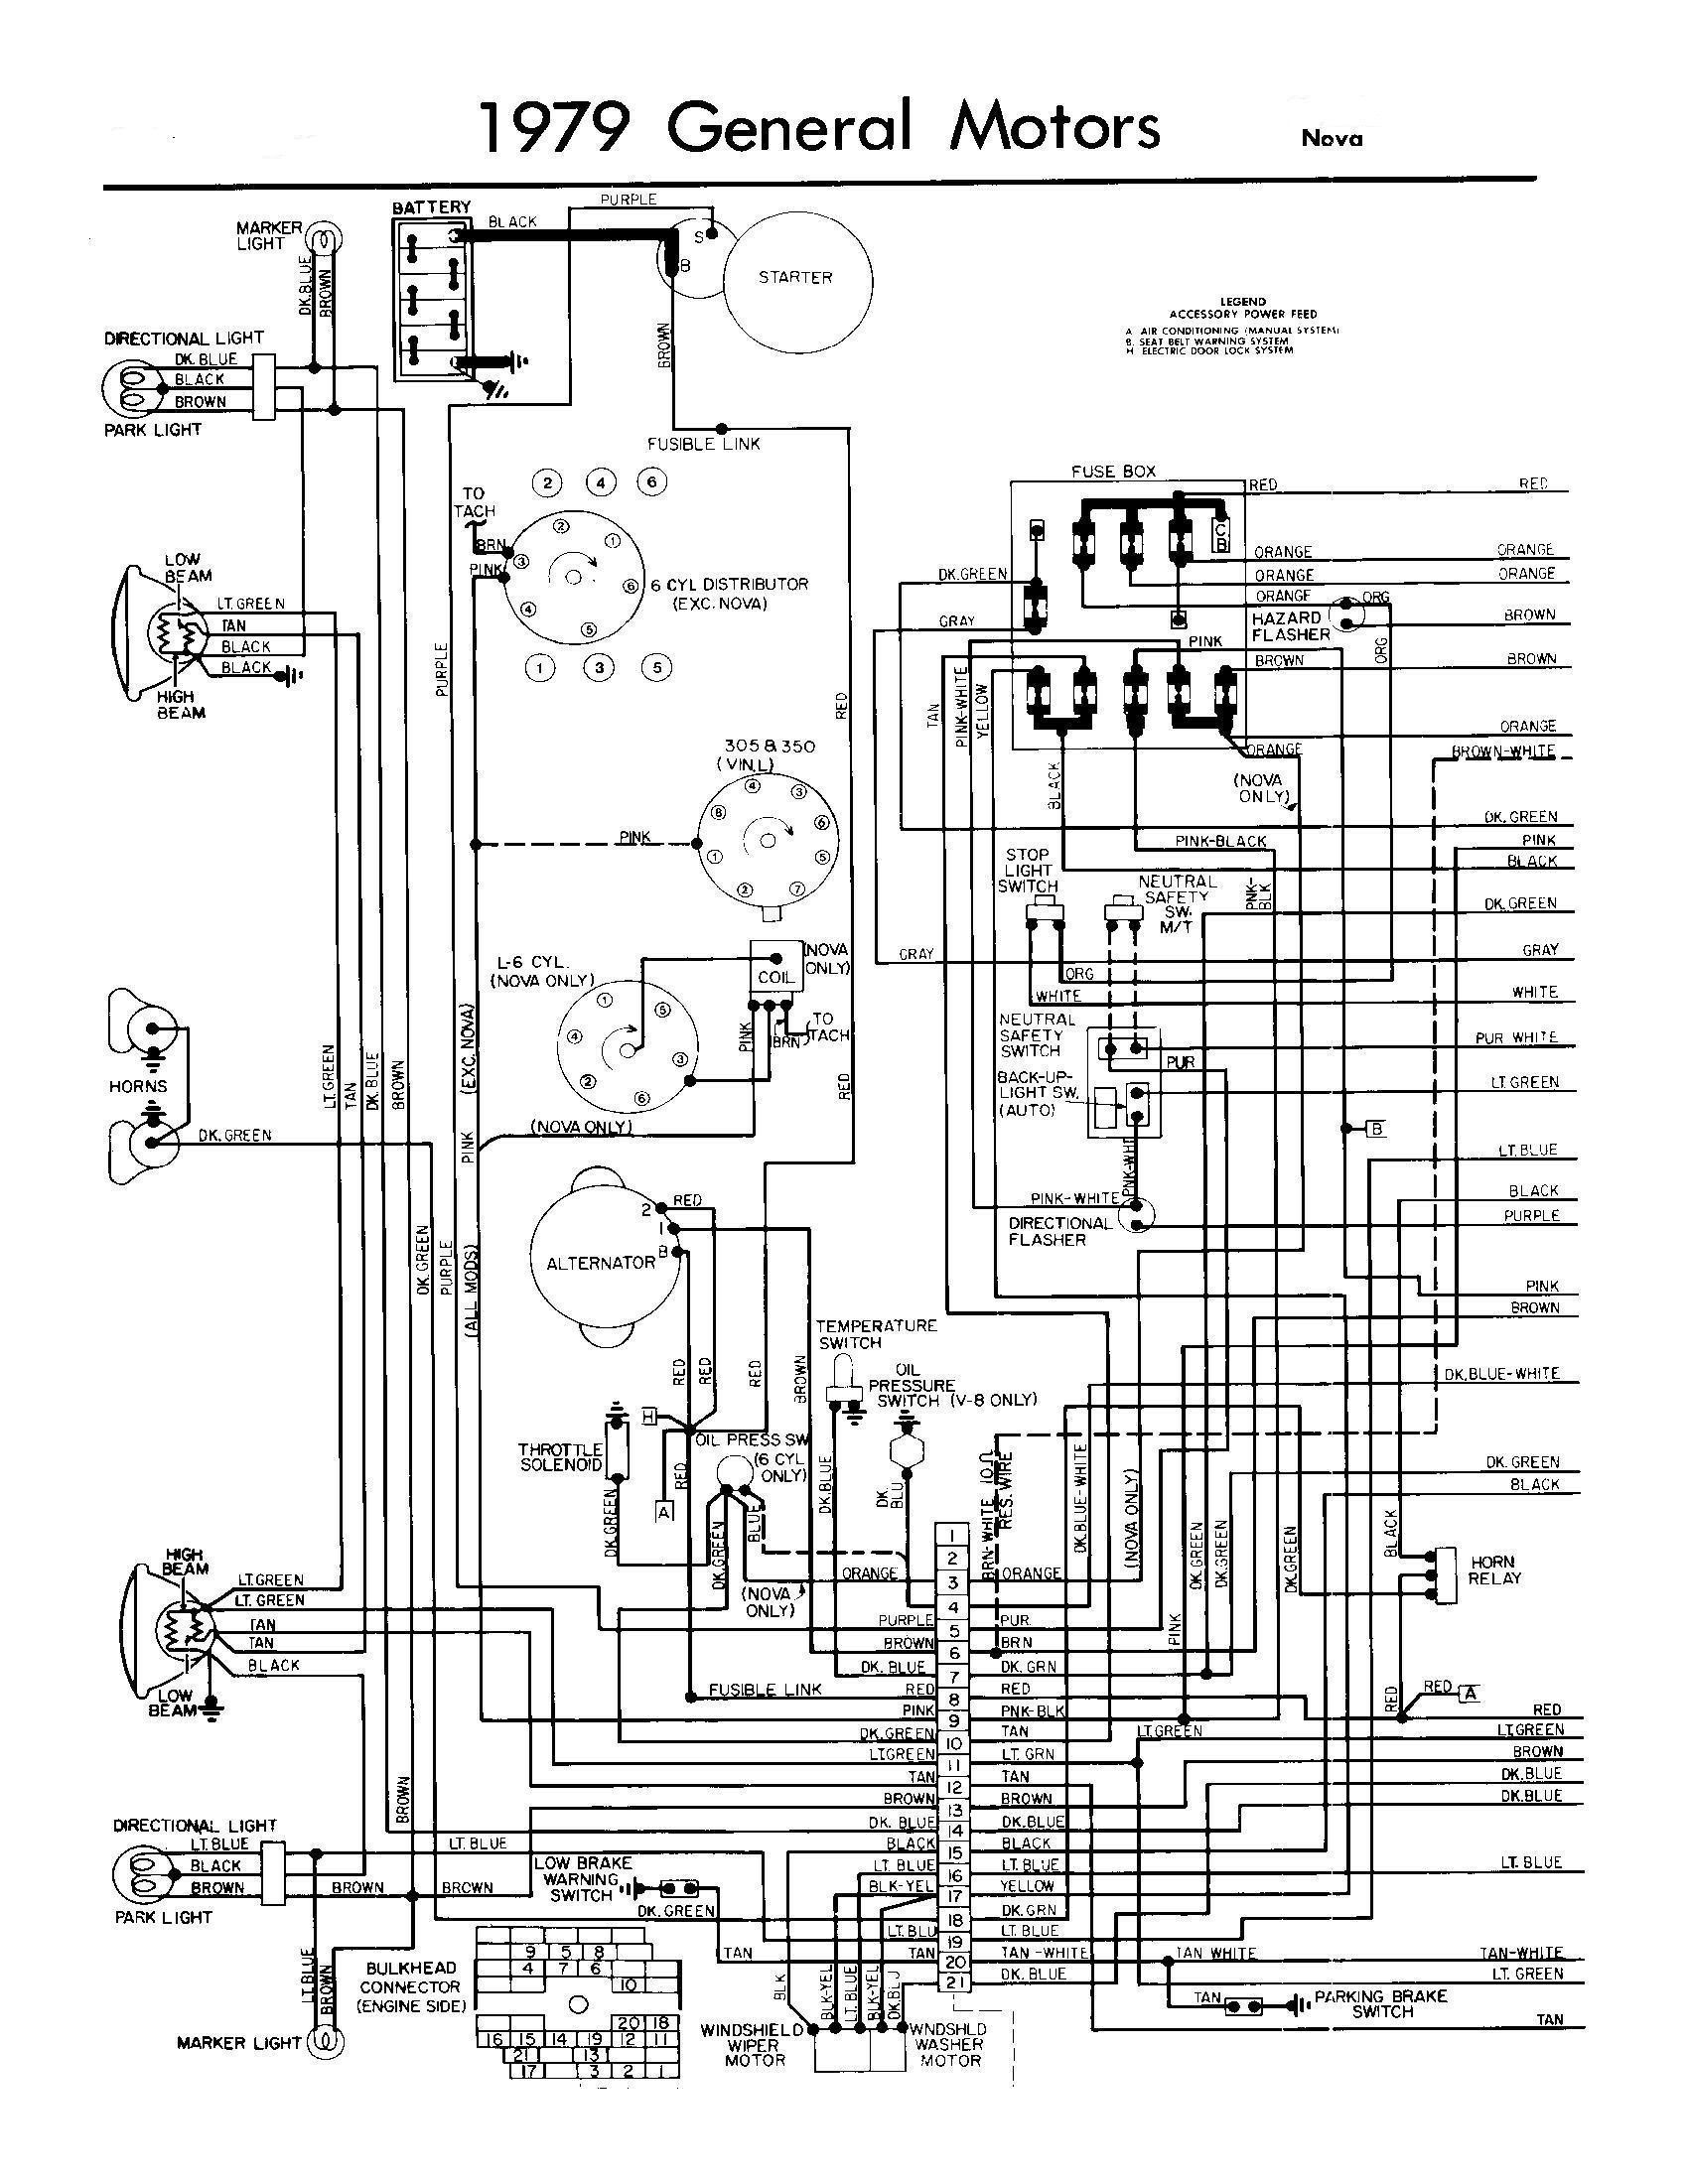 86 camaro radio wiring car wiring diagrams explained u2022 rh ethermag co 98 Camaro 79 Camaro